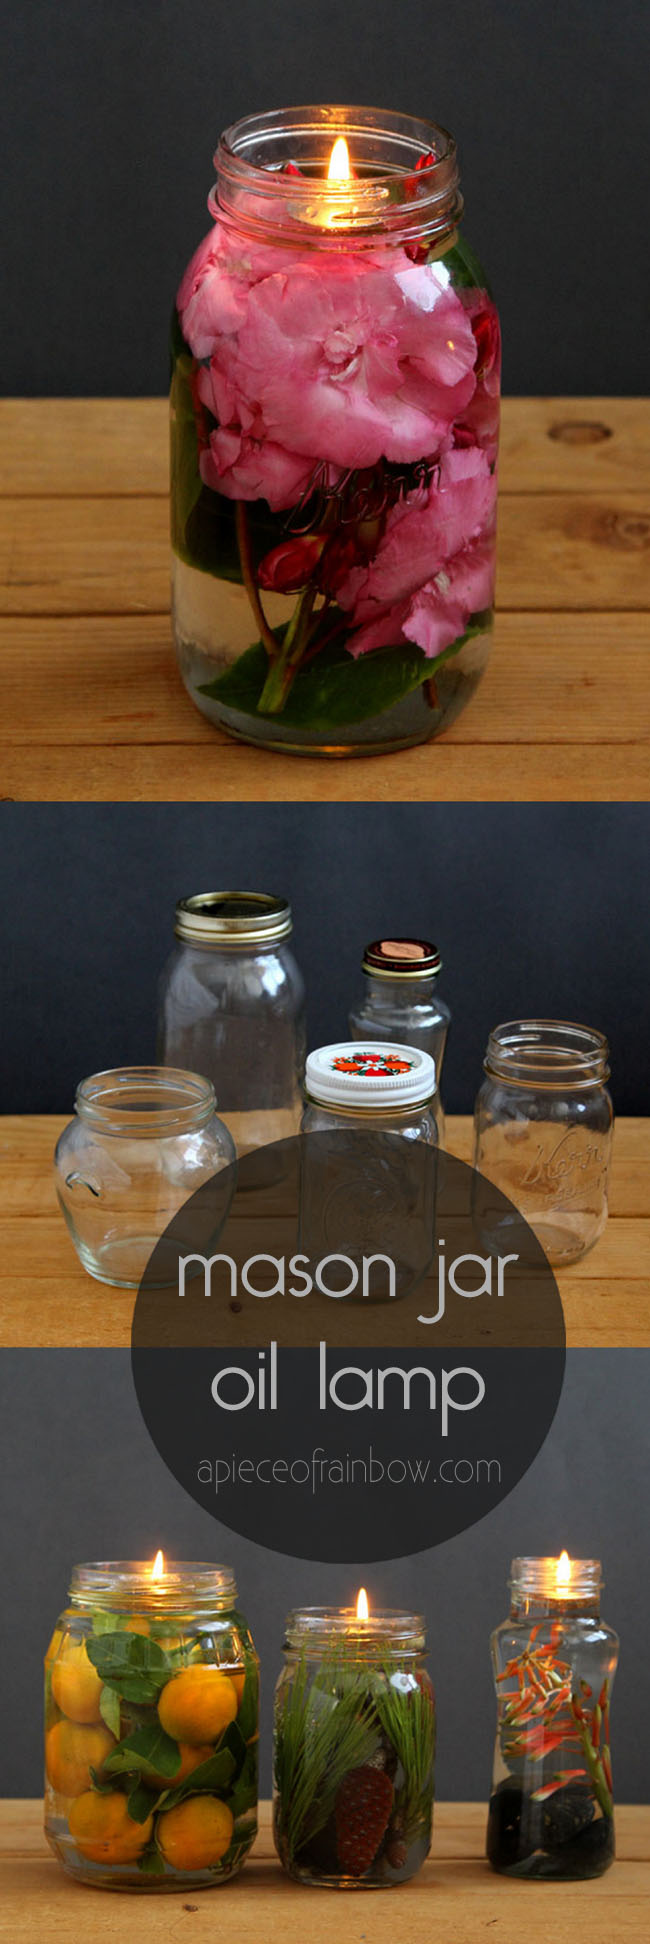 mason-jar-oil-lamp-diythought